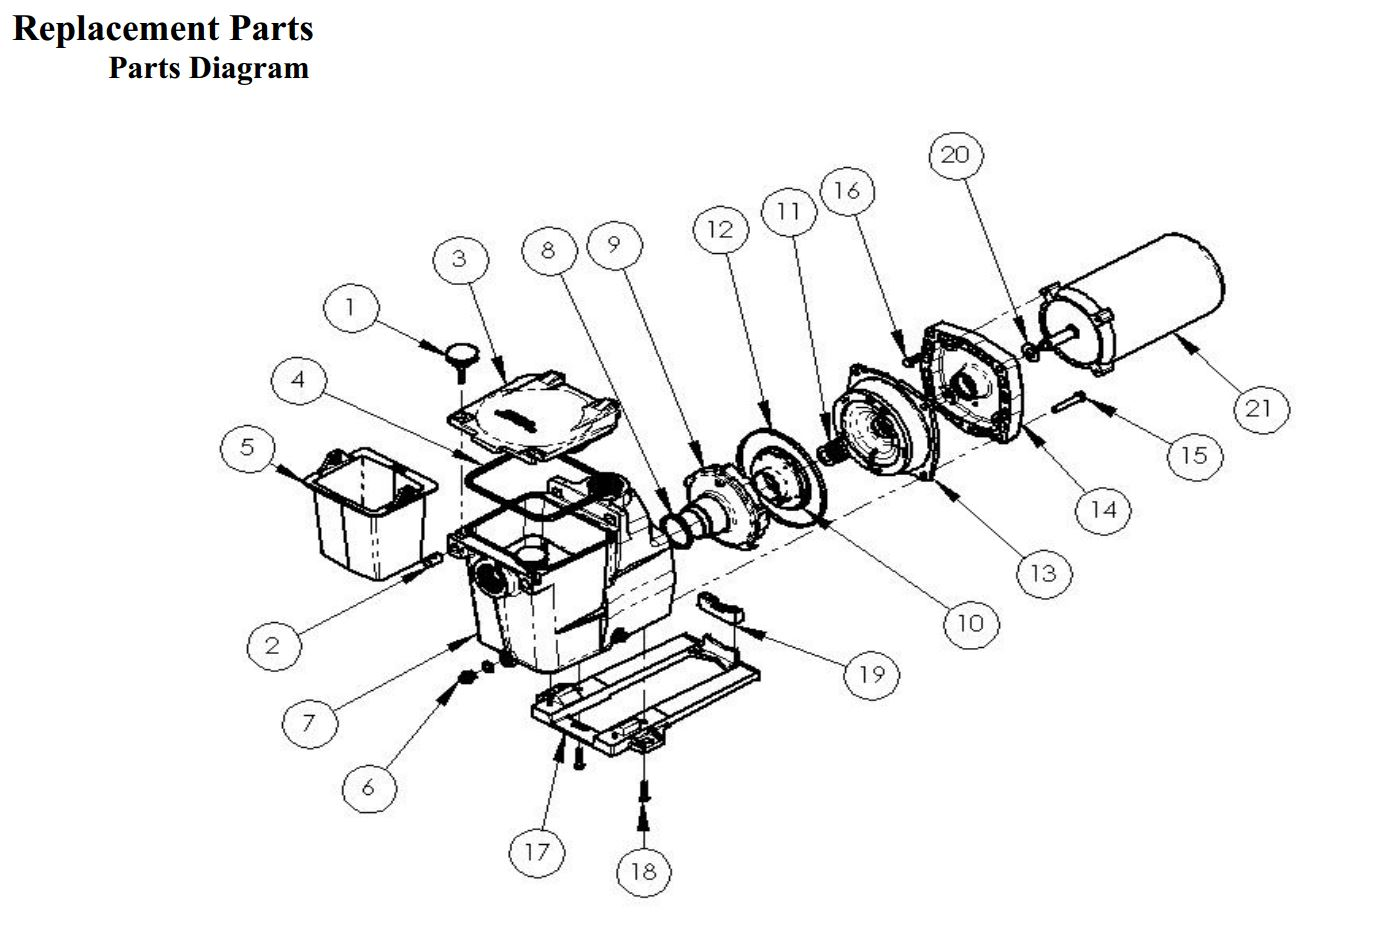 Hayward_Pump_ReplacementParts_WireDiagram._V359521762_ amazon com hayward sp2610x15 super pump 1 5 hp max rated single Hayward Pool Pumps 1.5 HP at readyjetset.co